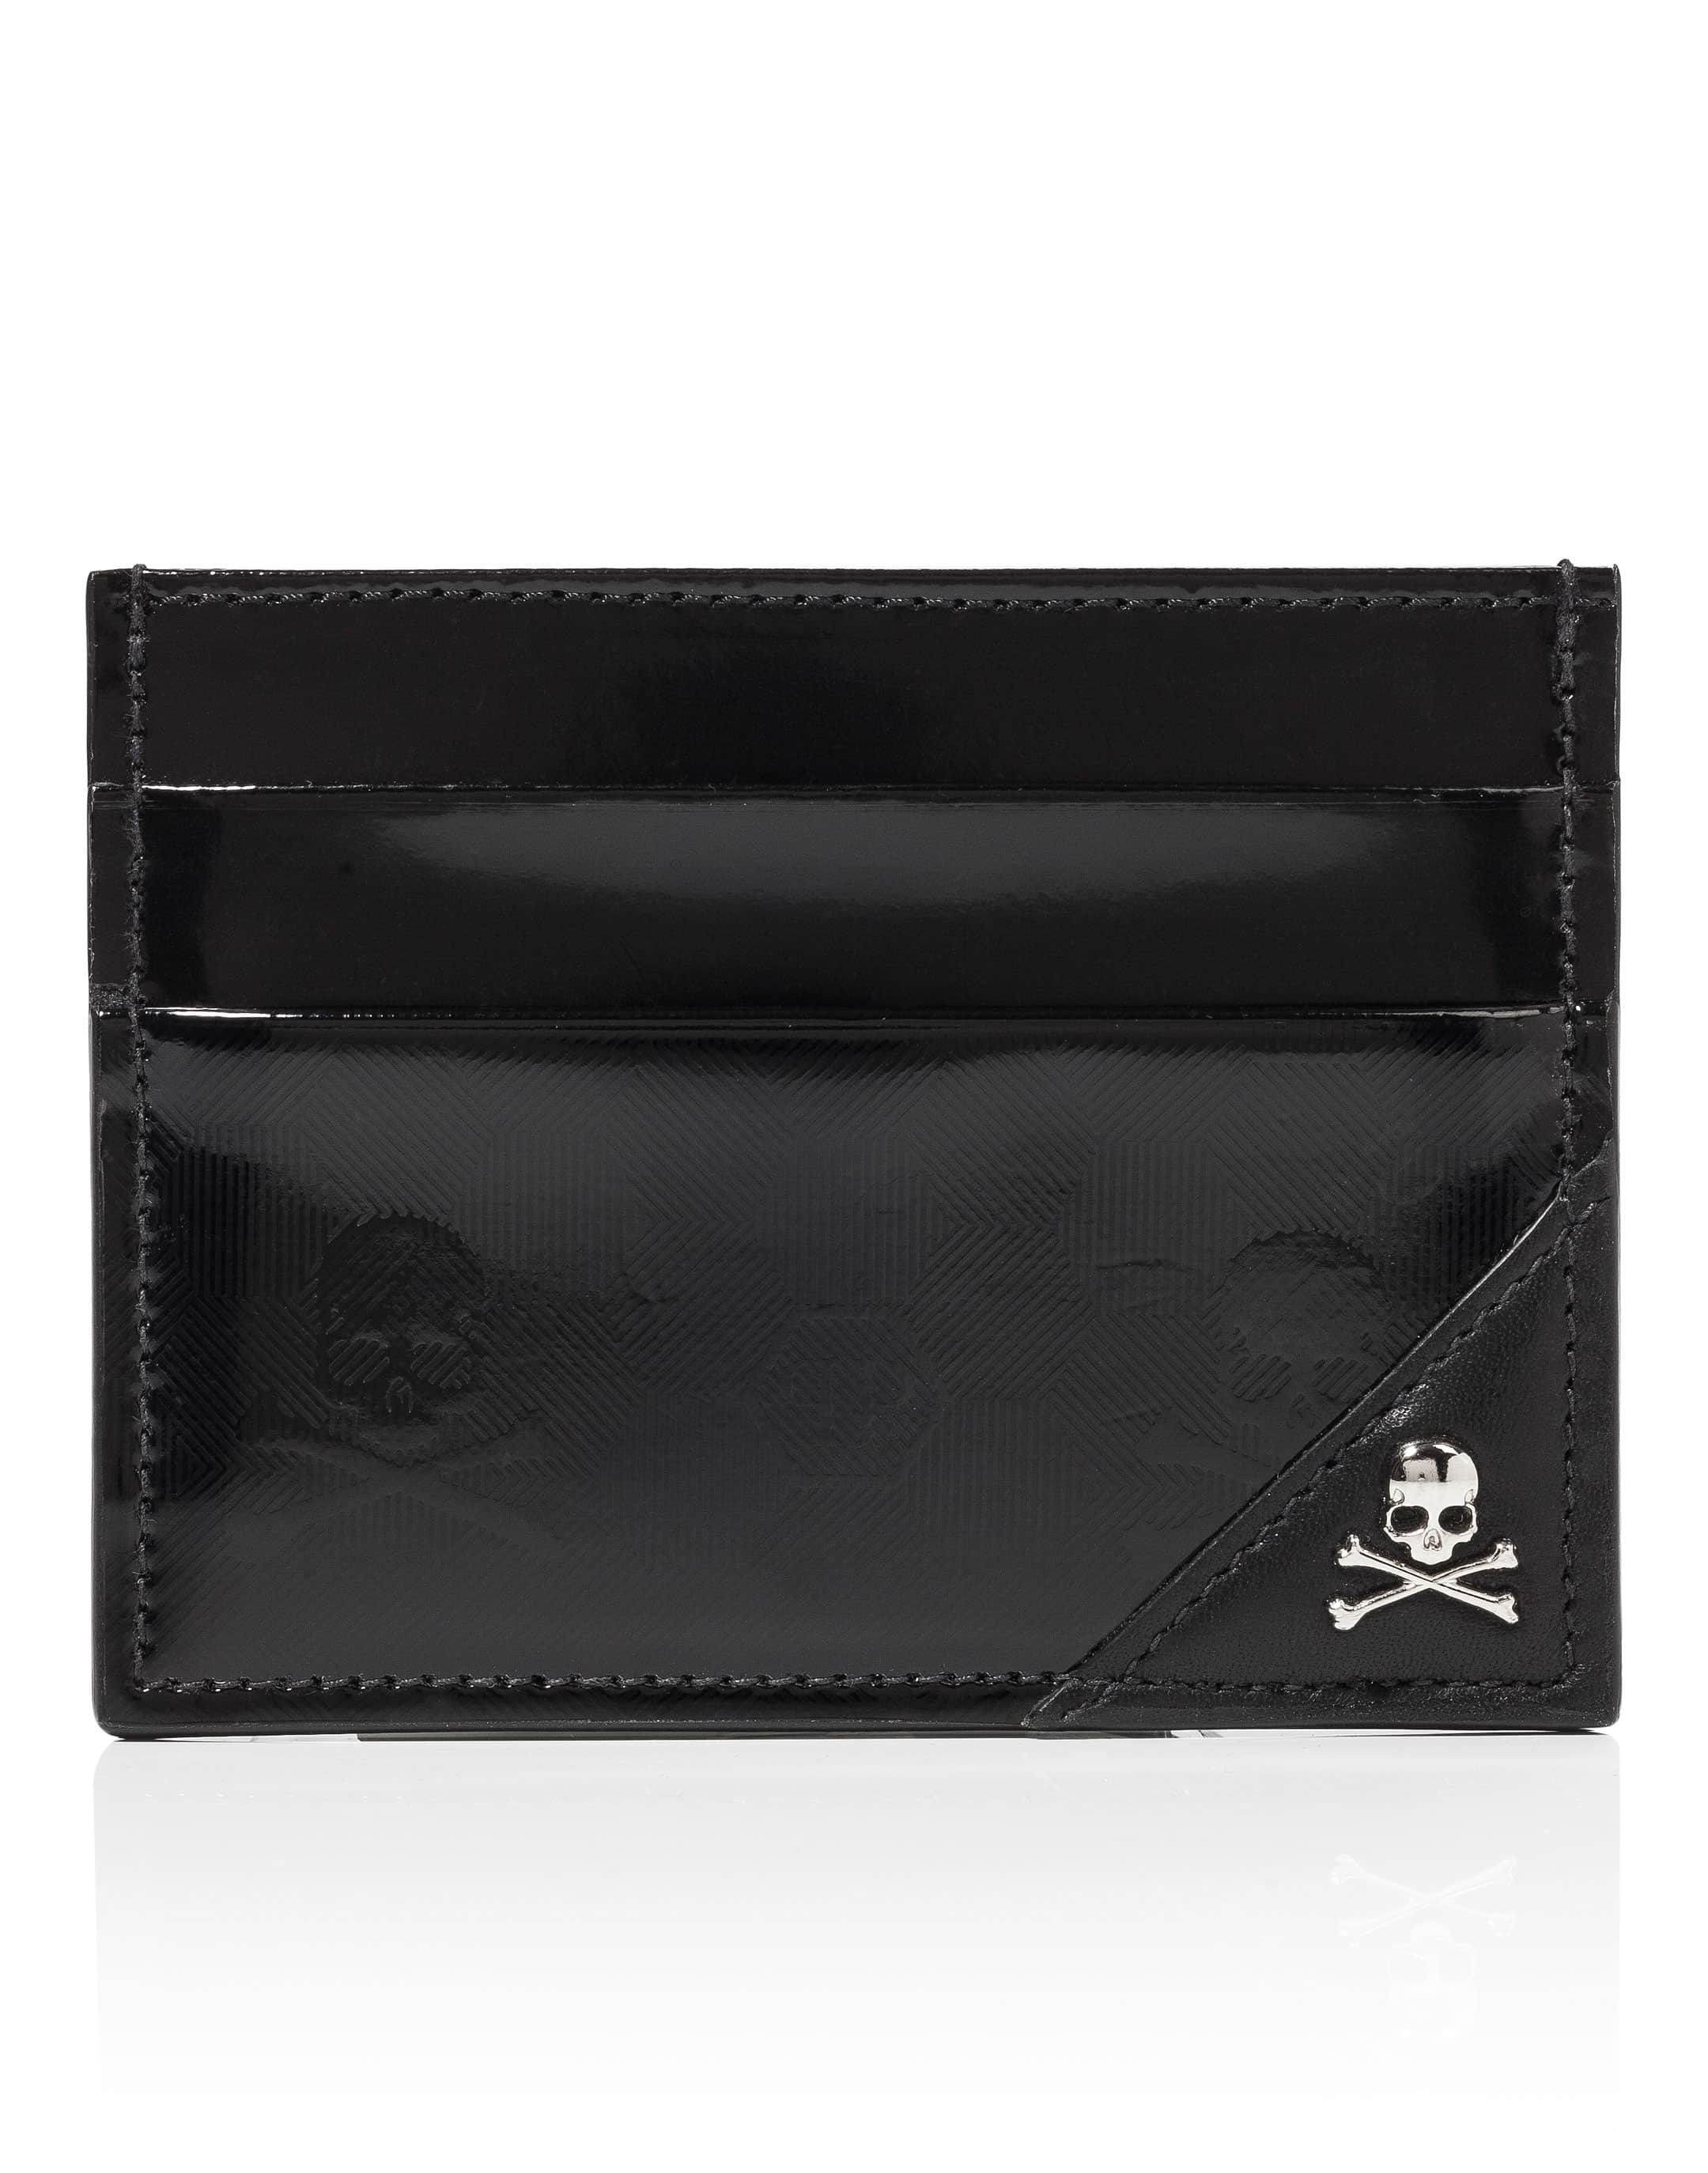 Philipp Plein Porte-cartes It's Not What It Seems Yev260Kf5